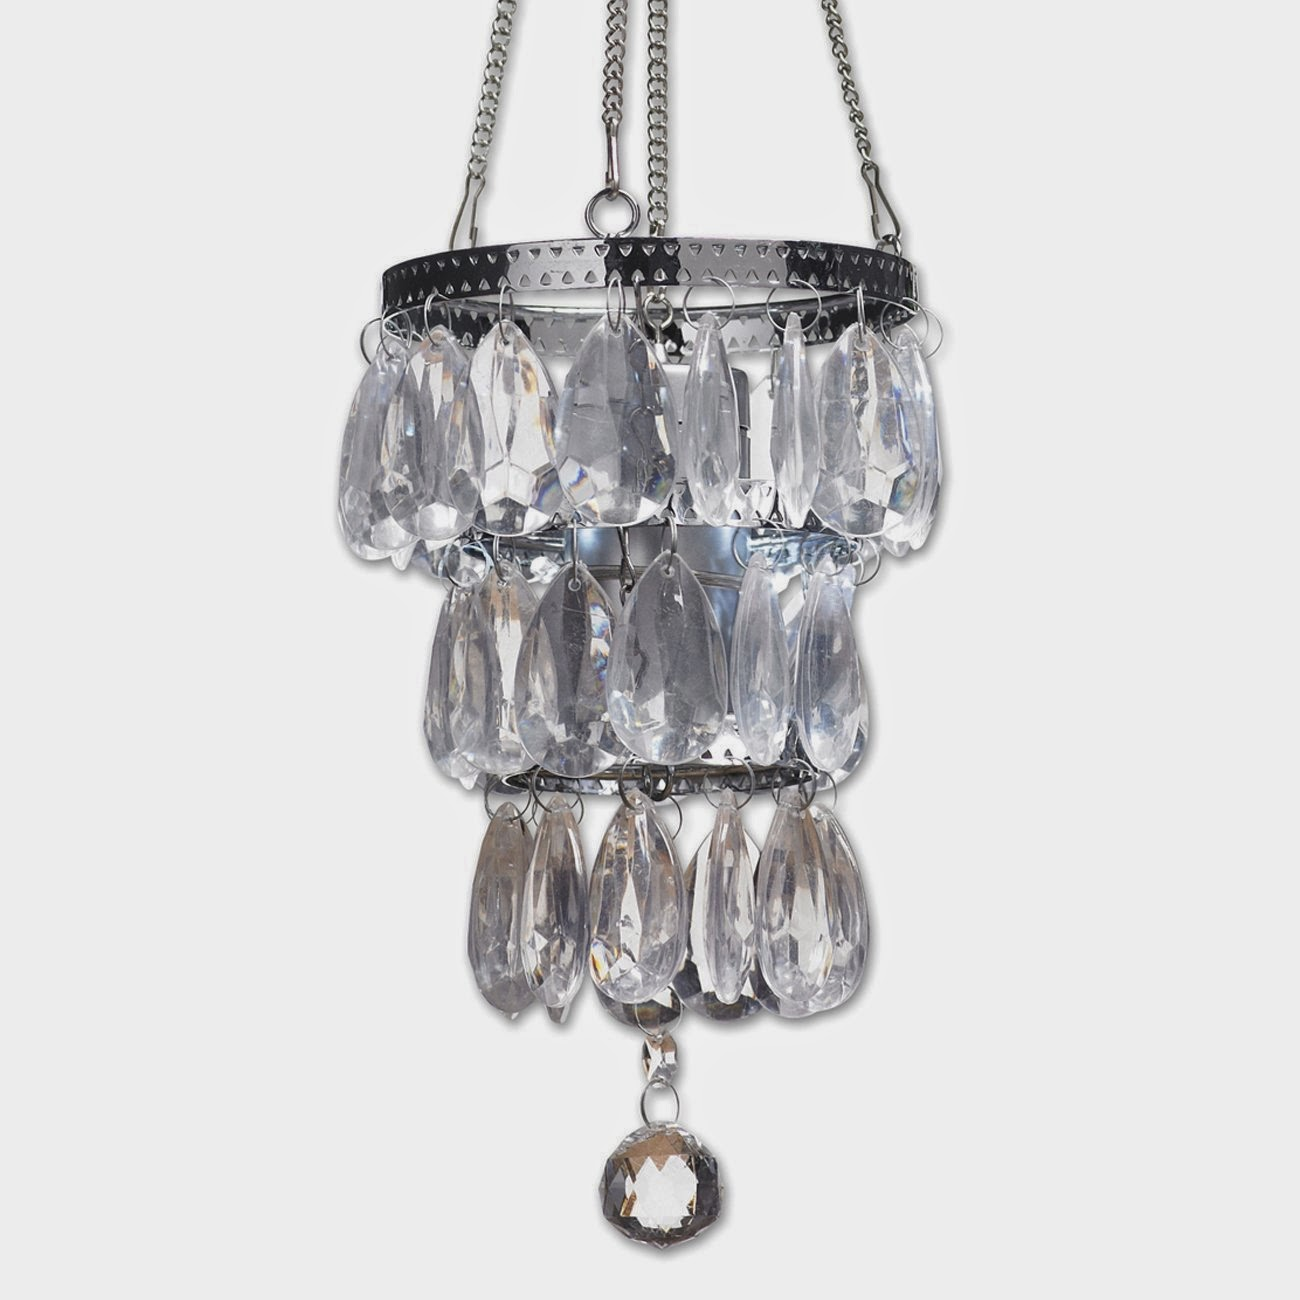 Sierra tools jb5571 battery operated ceiling wall light with remote exhart anywhere lighting - Battery operated crystal wall sconces ...